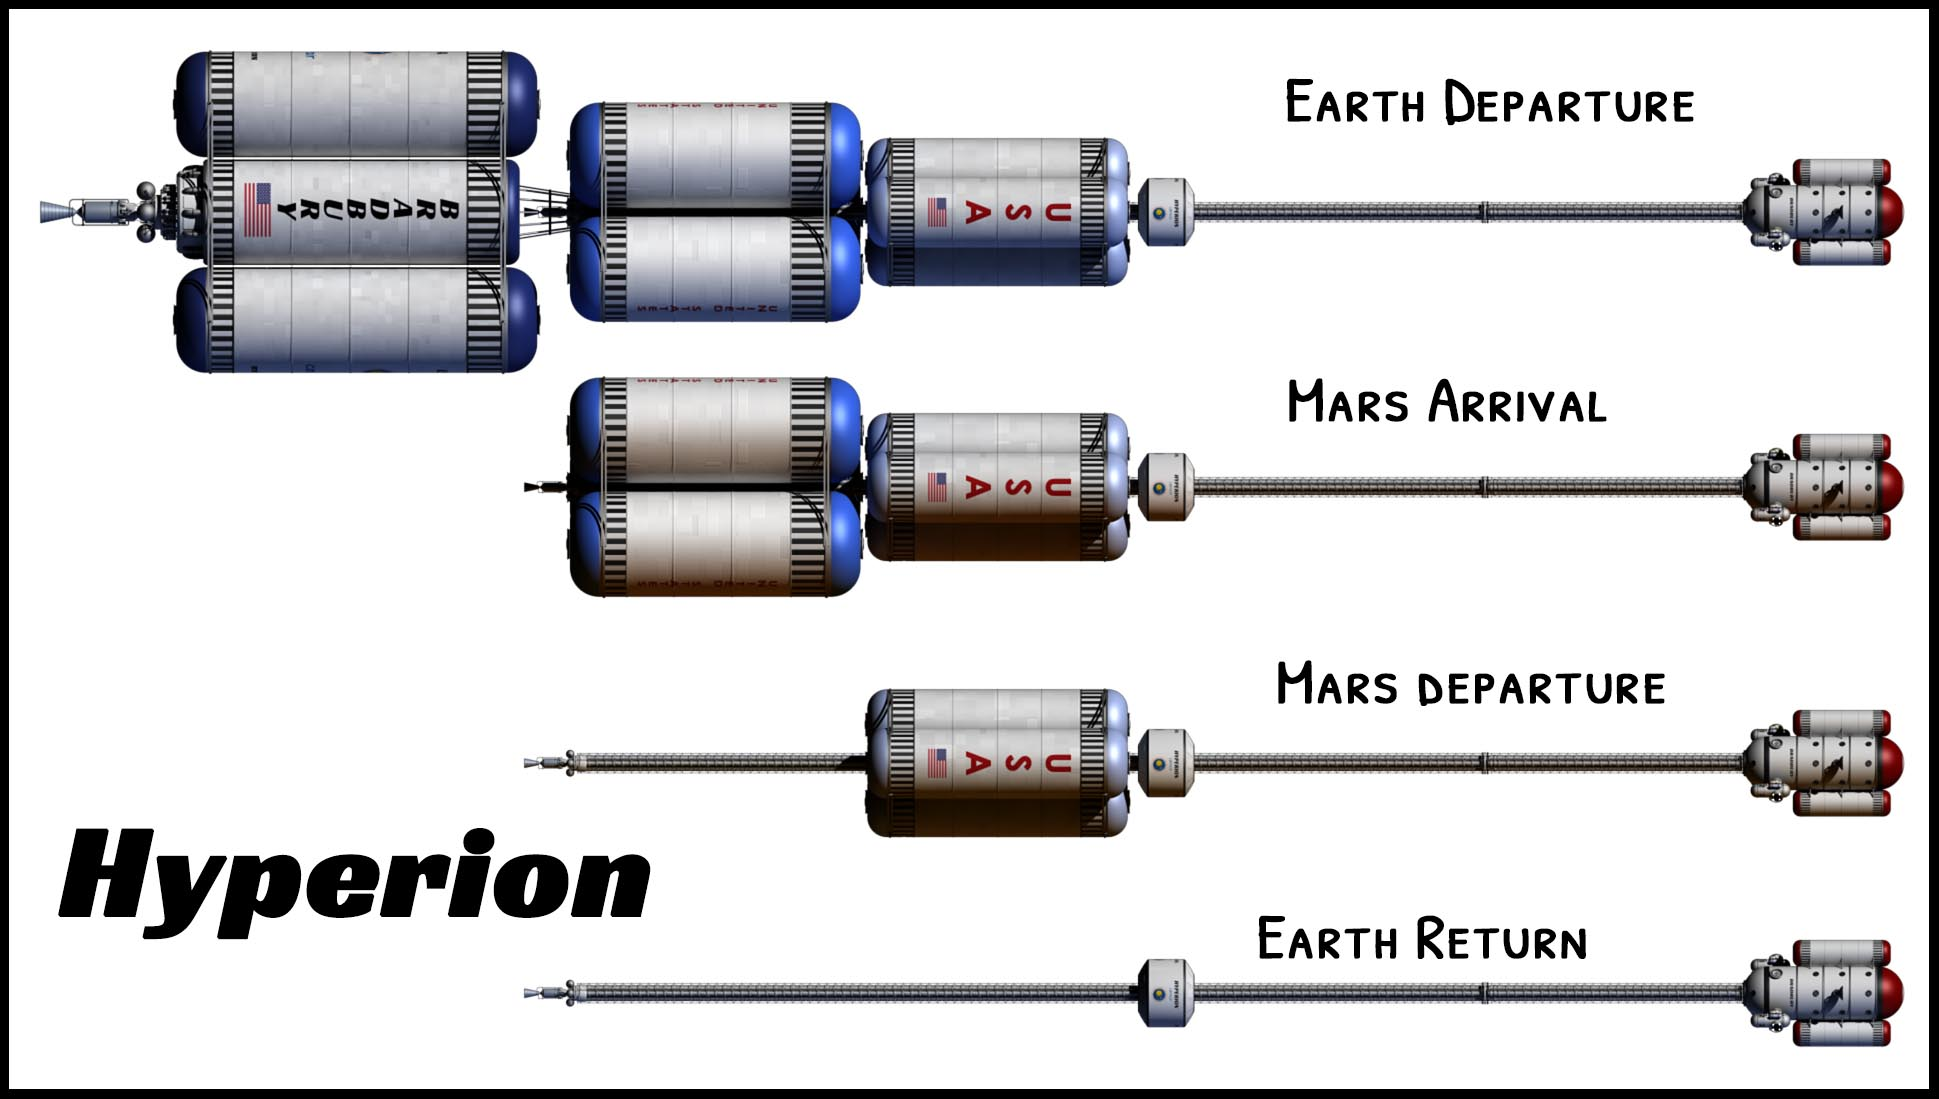 Hyperion at different mission stages